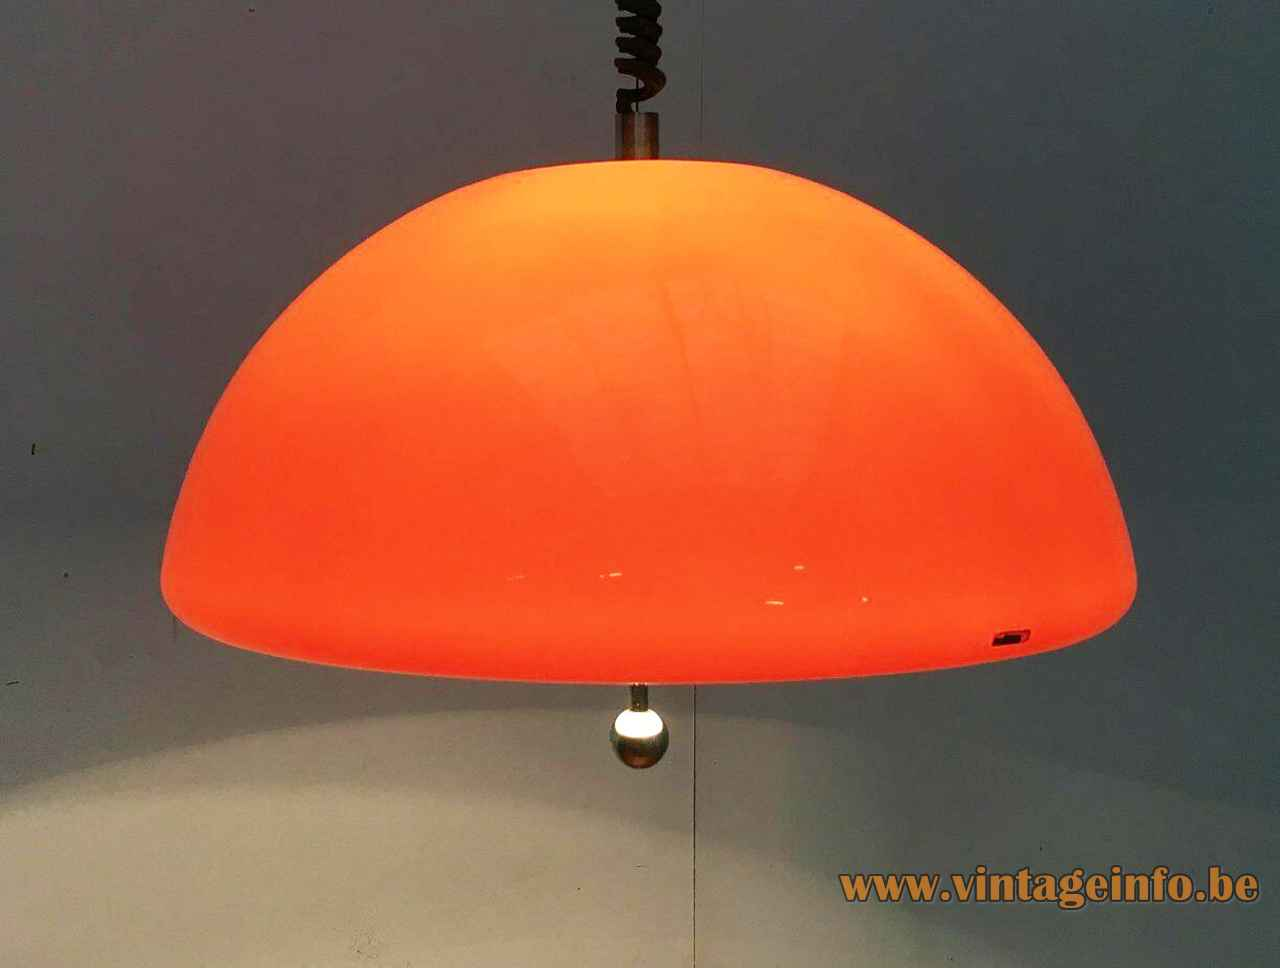 Harvey Guzzini Cabras pendant lamp round orange acrylic lampshade chrome ball handle 1960s 1970s iGuzzini Italy